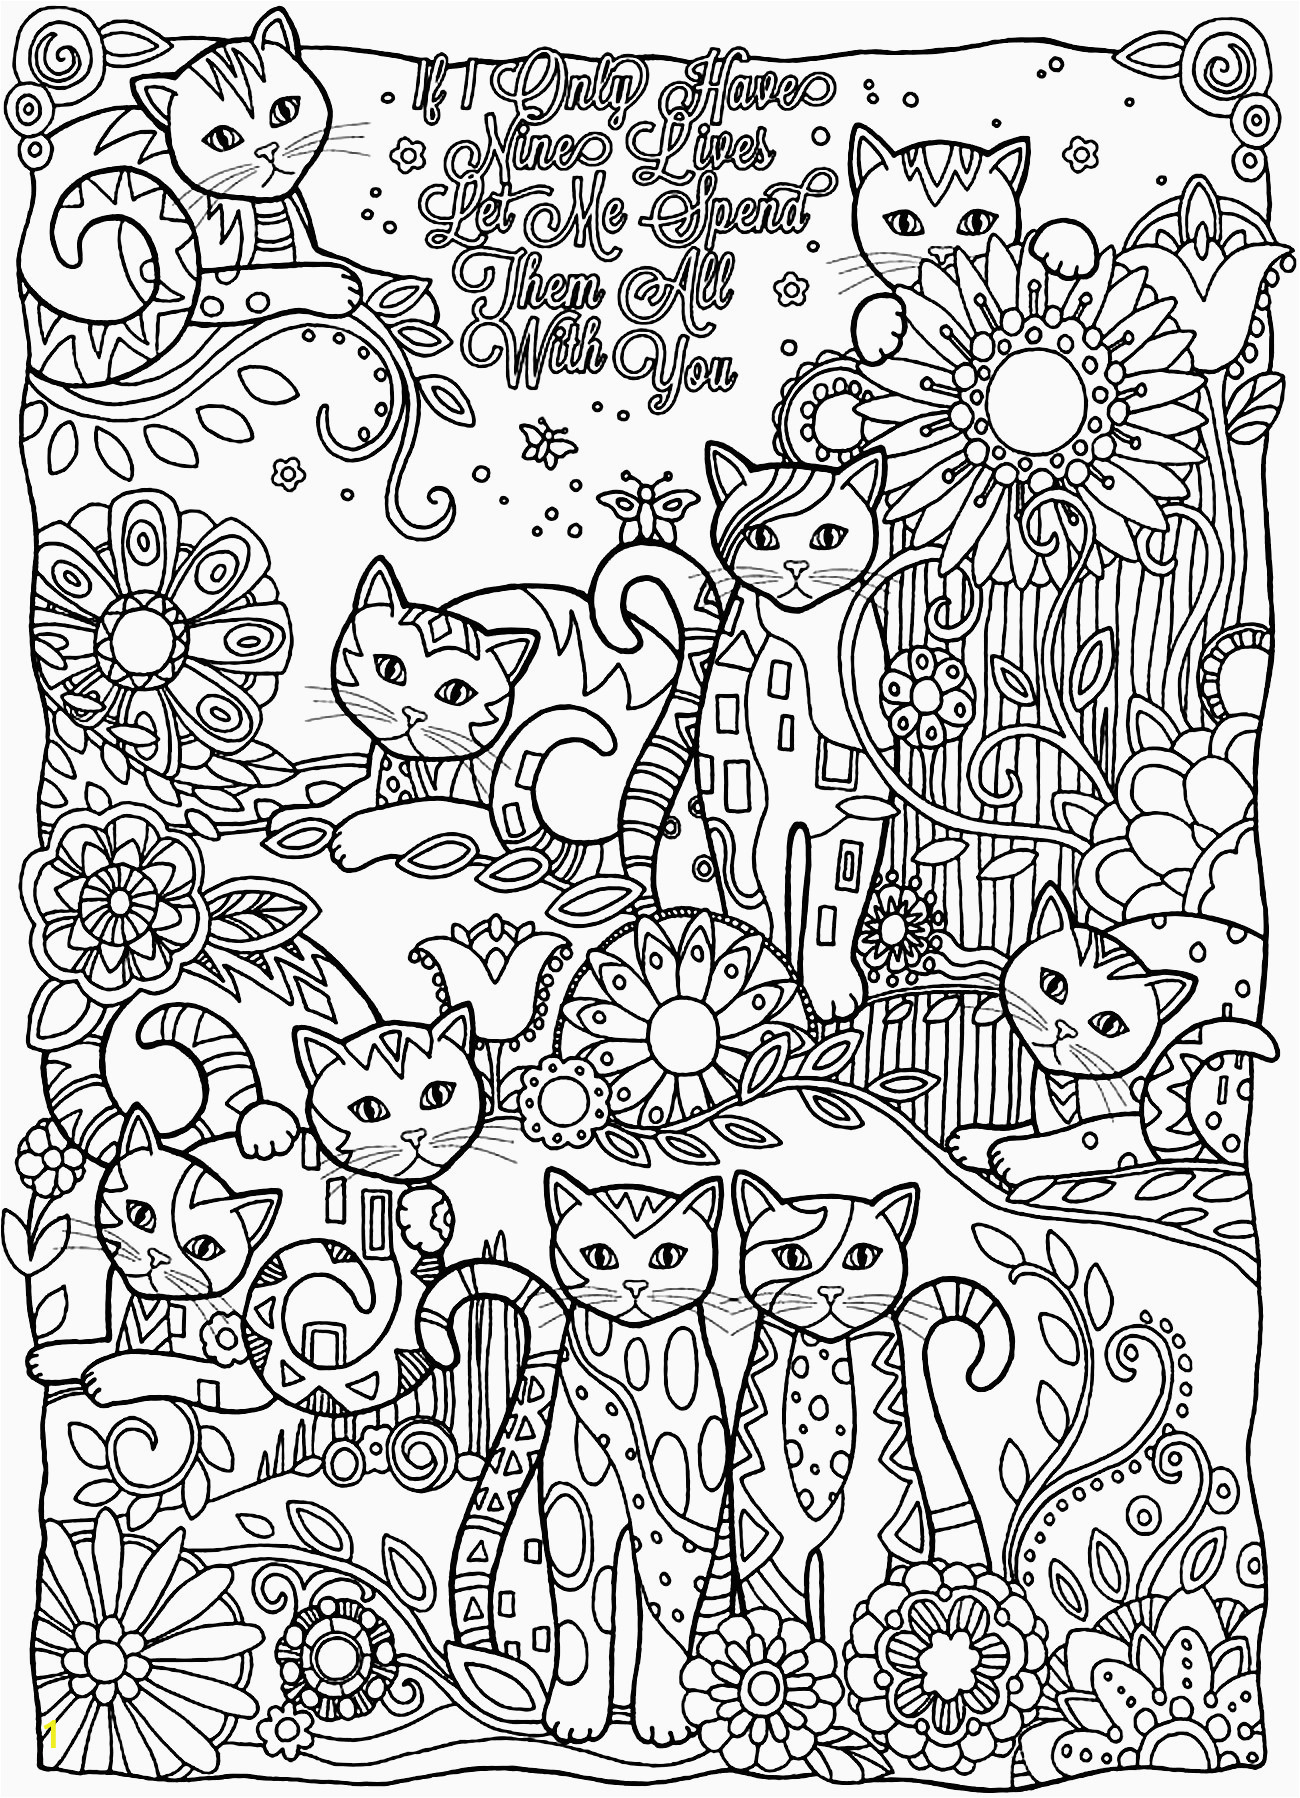 free coloring pages adults printable hard color free adult coloring pages pdf best best od dog coloring pages of free coloring pages adults printable hard color